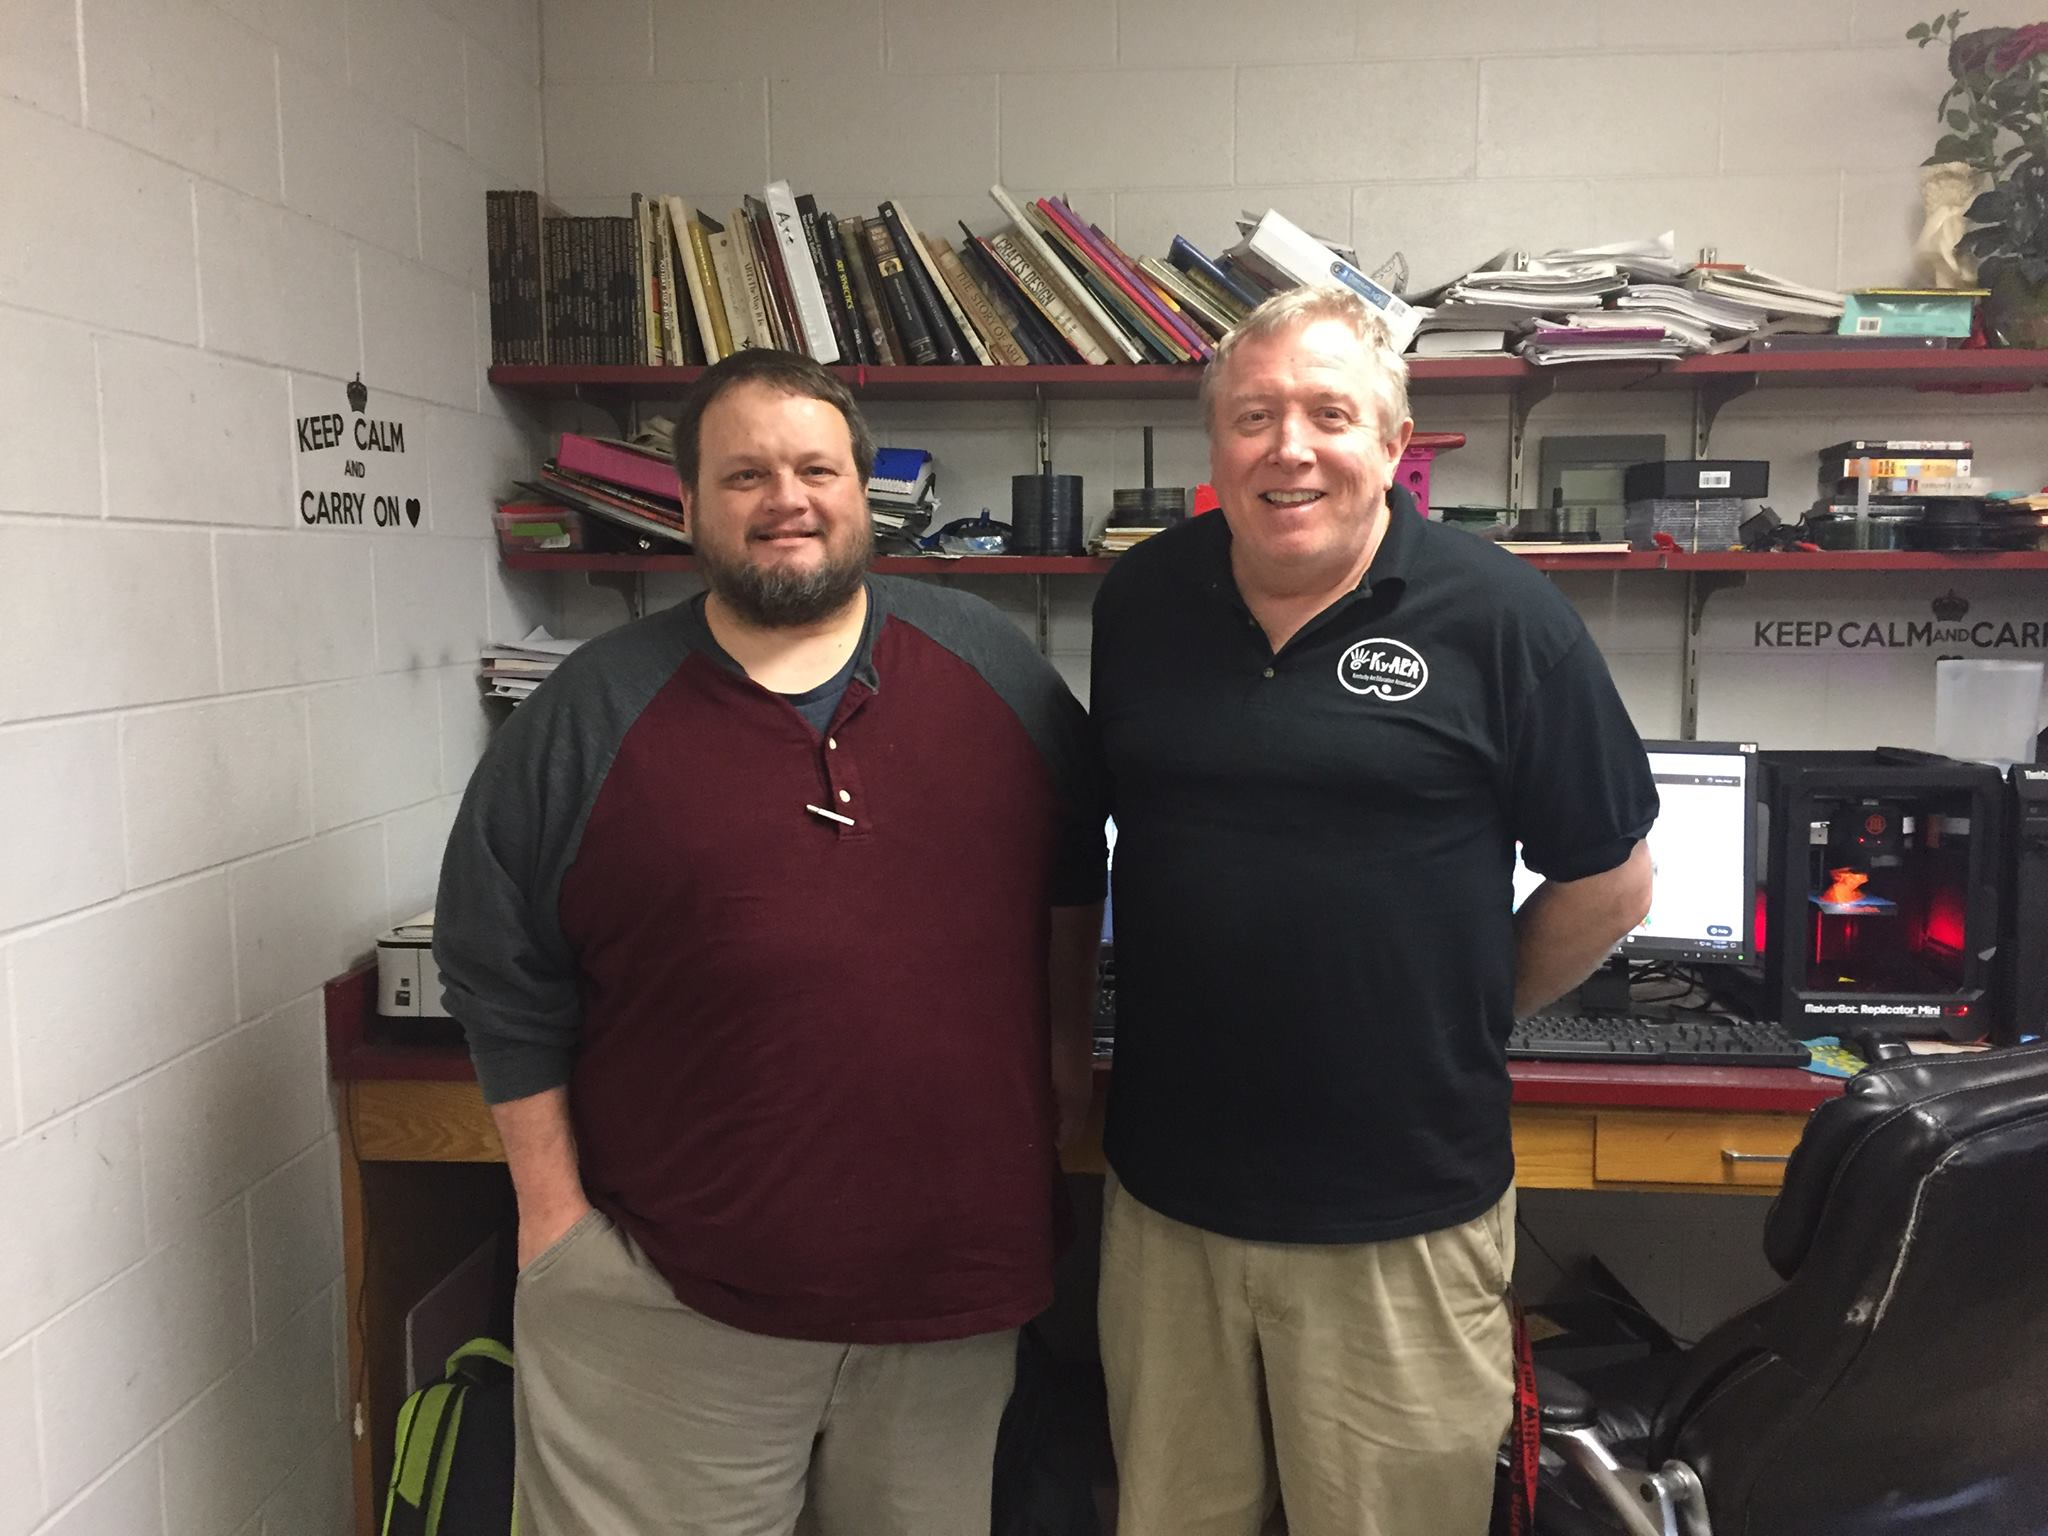 EKU Professor and Tim Withers